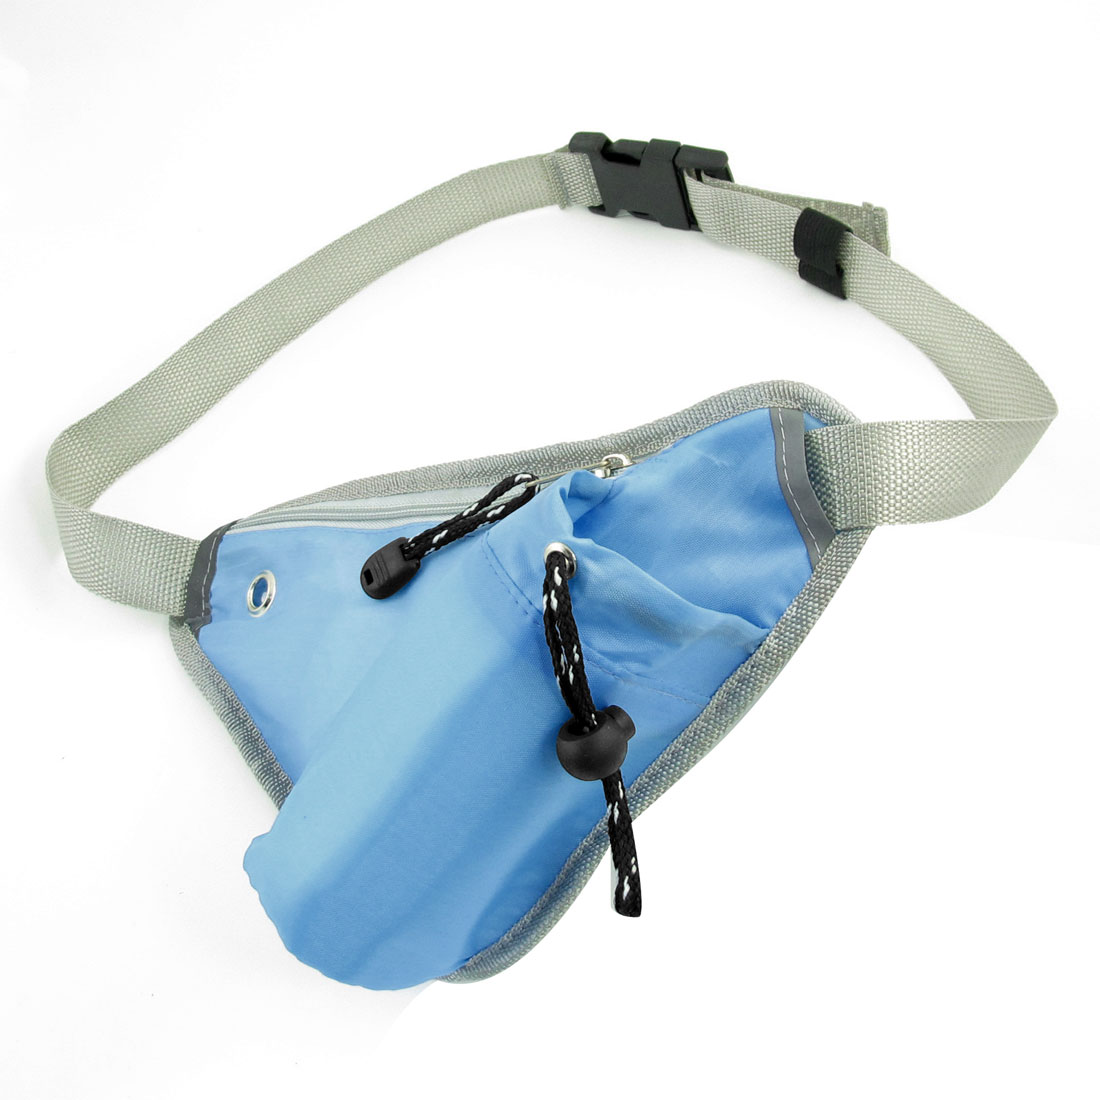 Blue Triangular Zippered Adjustable Strap Sport Bag Pouch Waist Pack